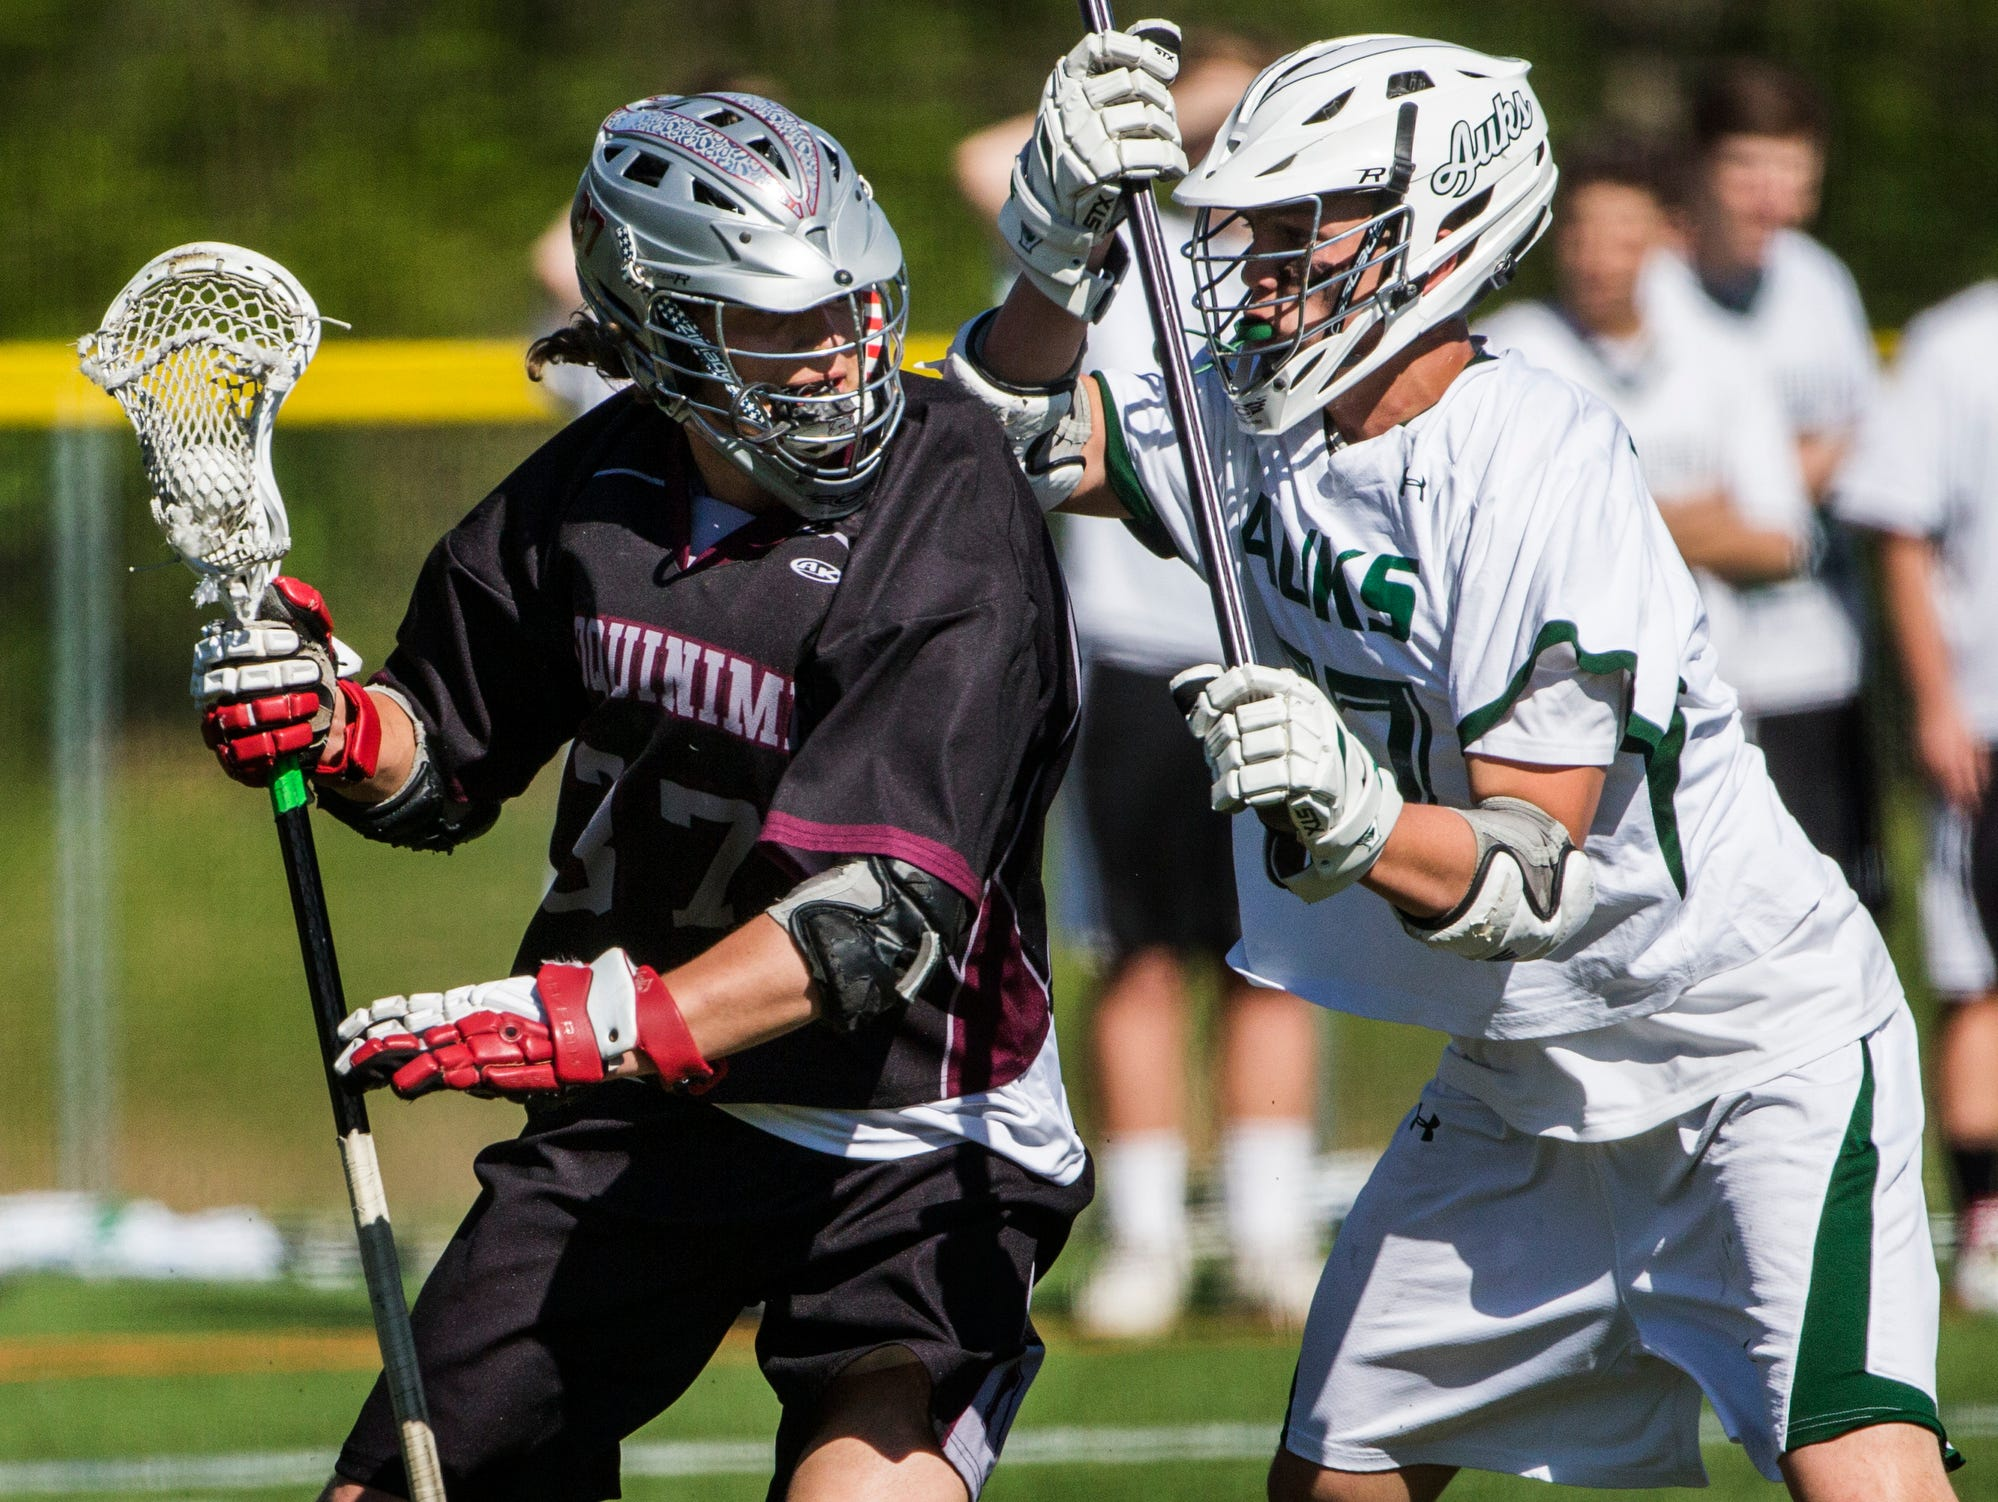 Appoquinimink's John Dunbar (left) works against Archmere's Ryan Whelan (right) in the first quarter of Appoquinimink's 13-12 win over Archmere at Archmere Academy on Wednesday afternoon.